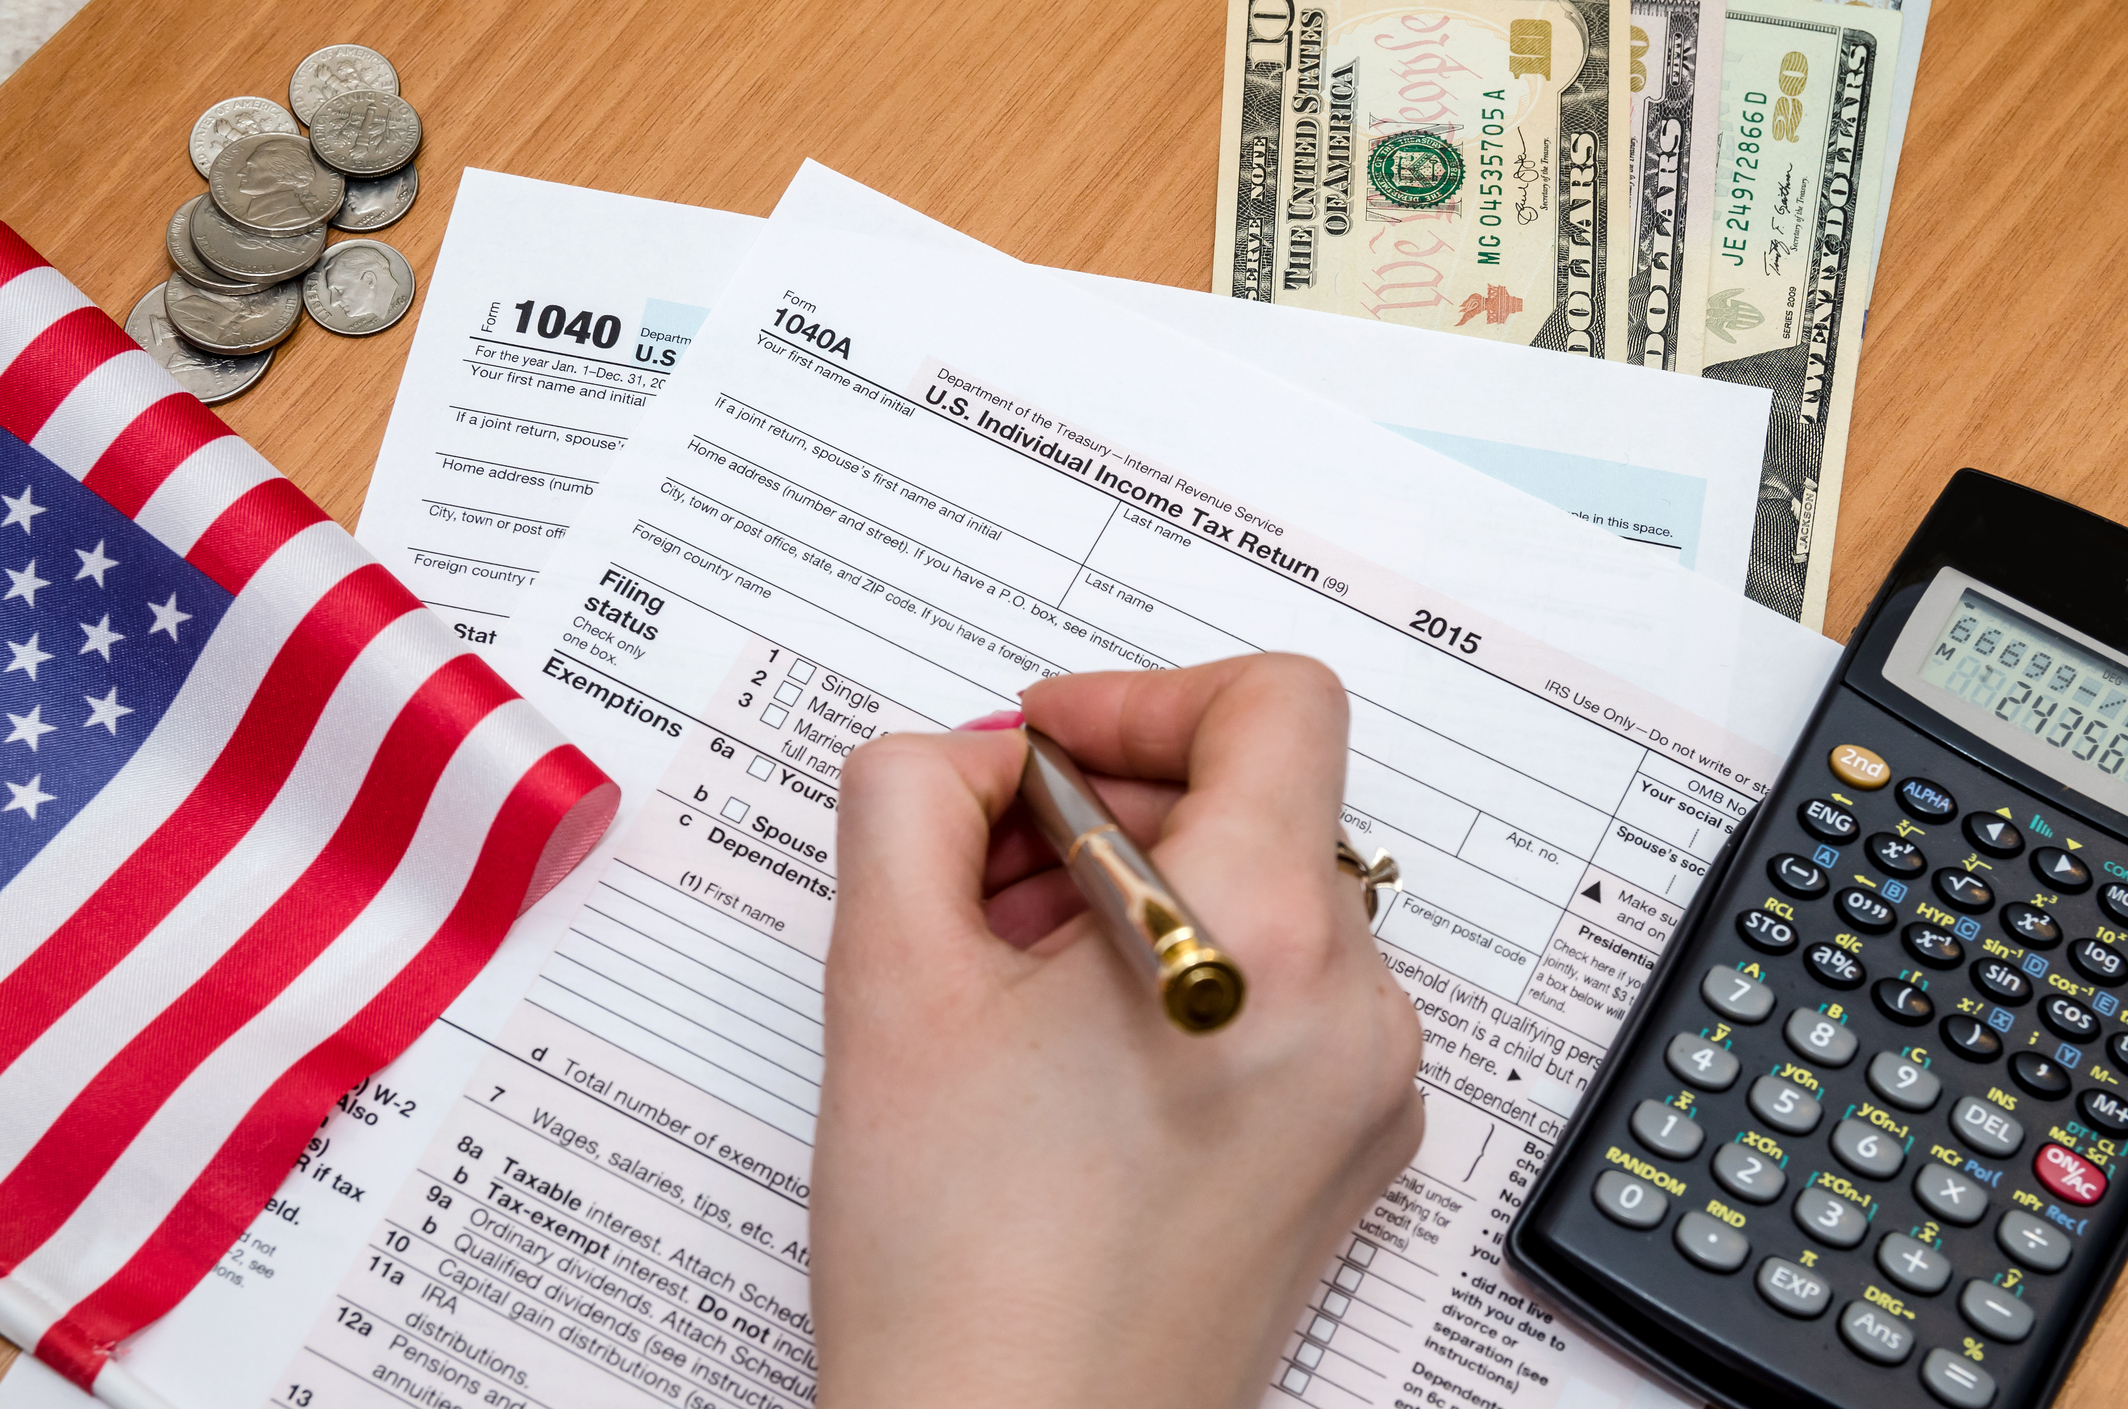 Report income tax fraud lovetoknow what is federal income tax used for falaconquin